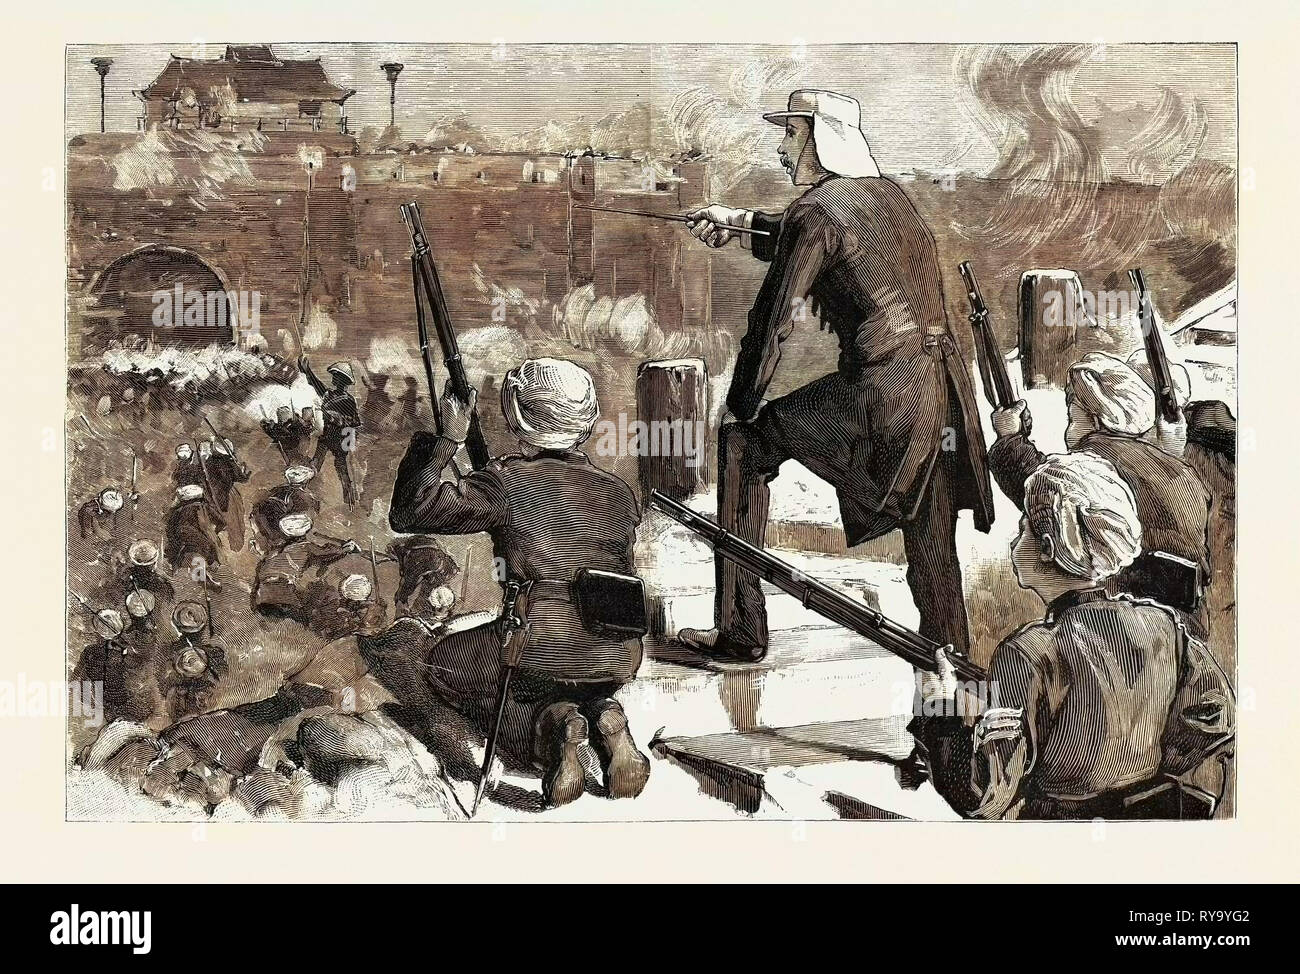 Gordon in China November 1863 Storming Soochow Gordon Determined on a Vigorous Assault on the North-East Angle of the Soochow Wall - Stock Image